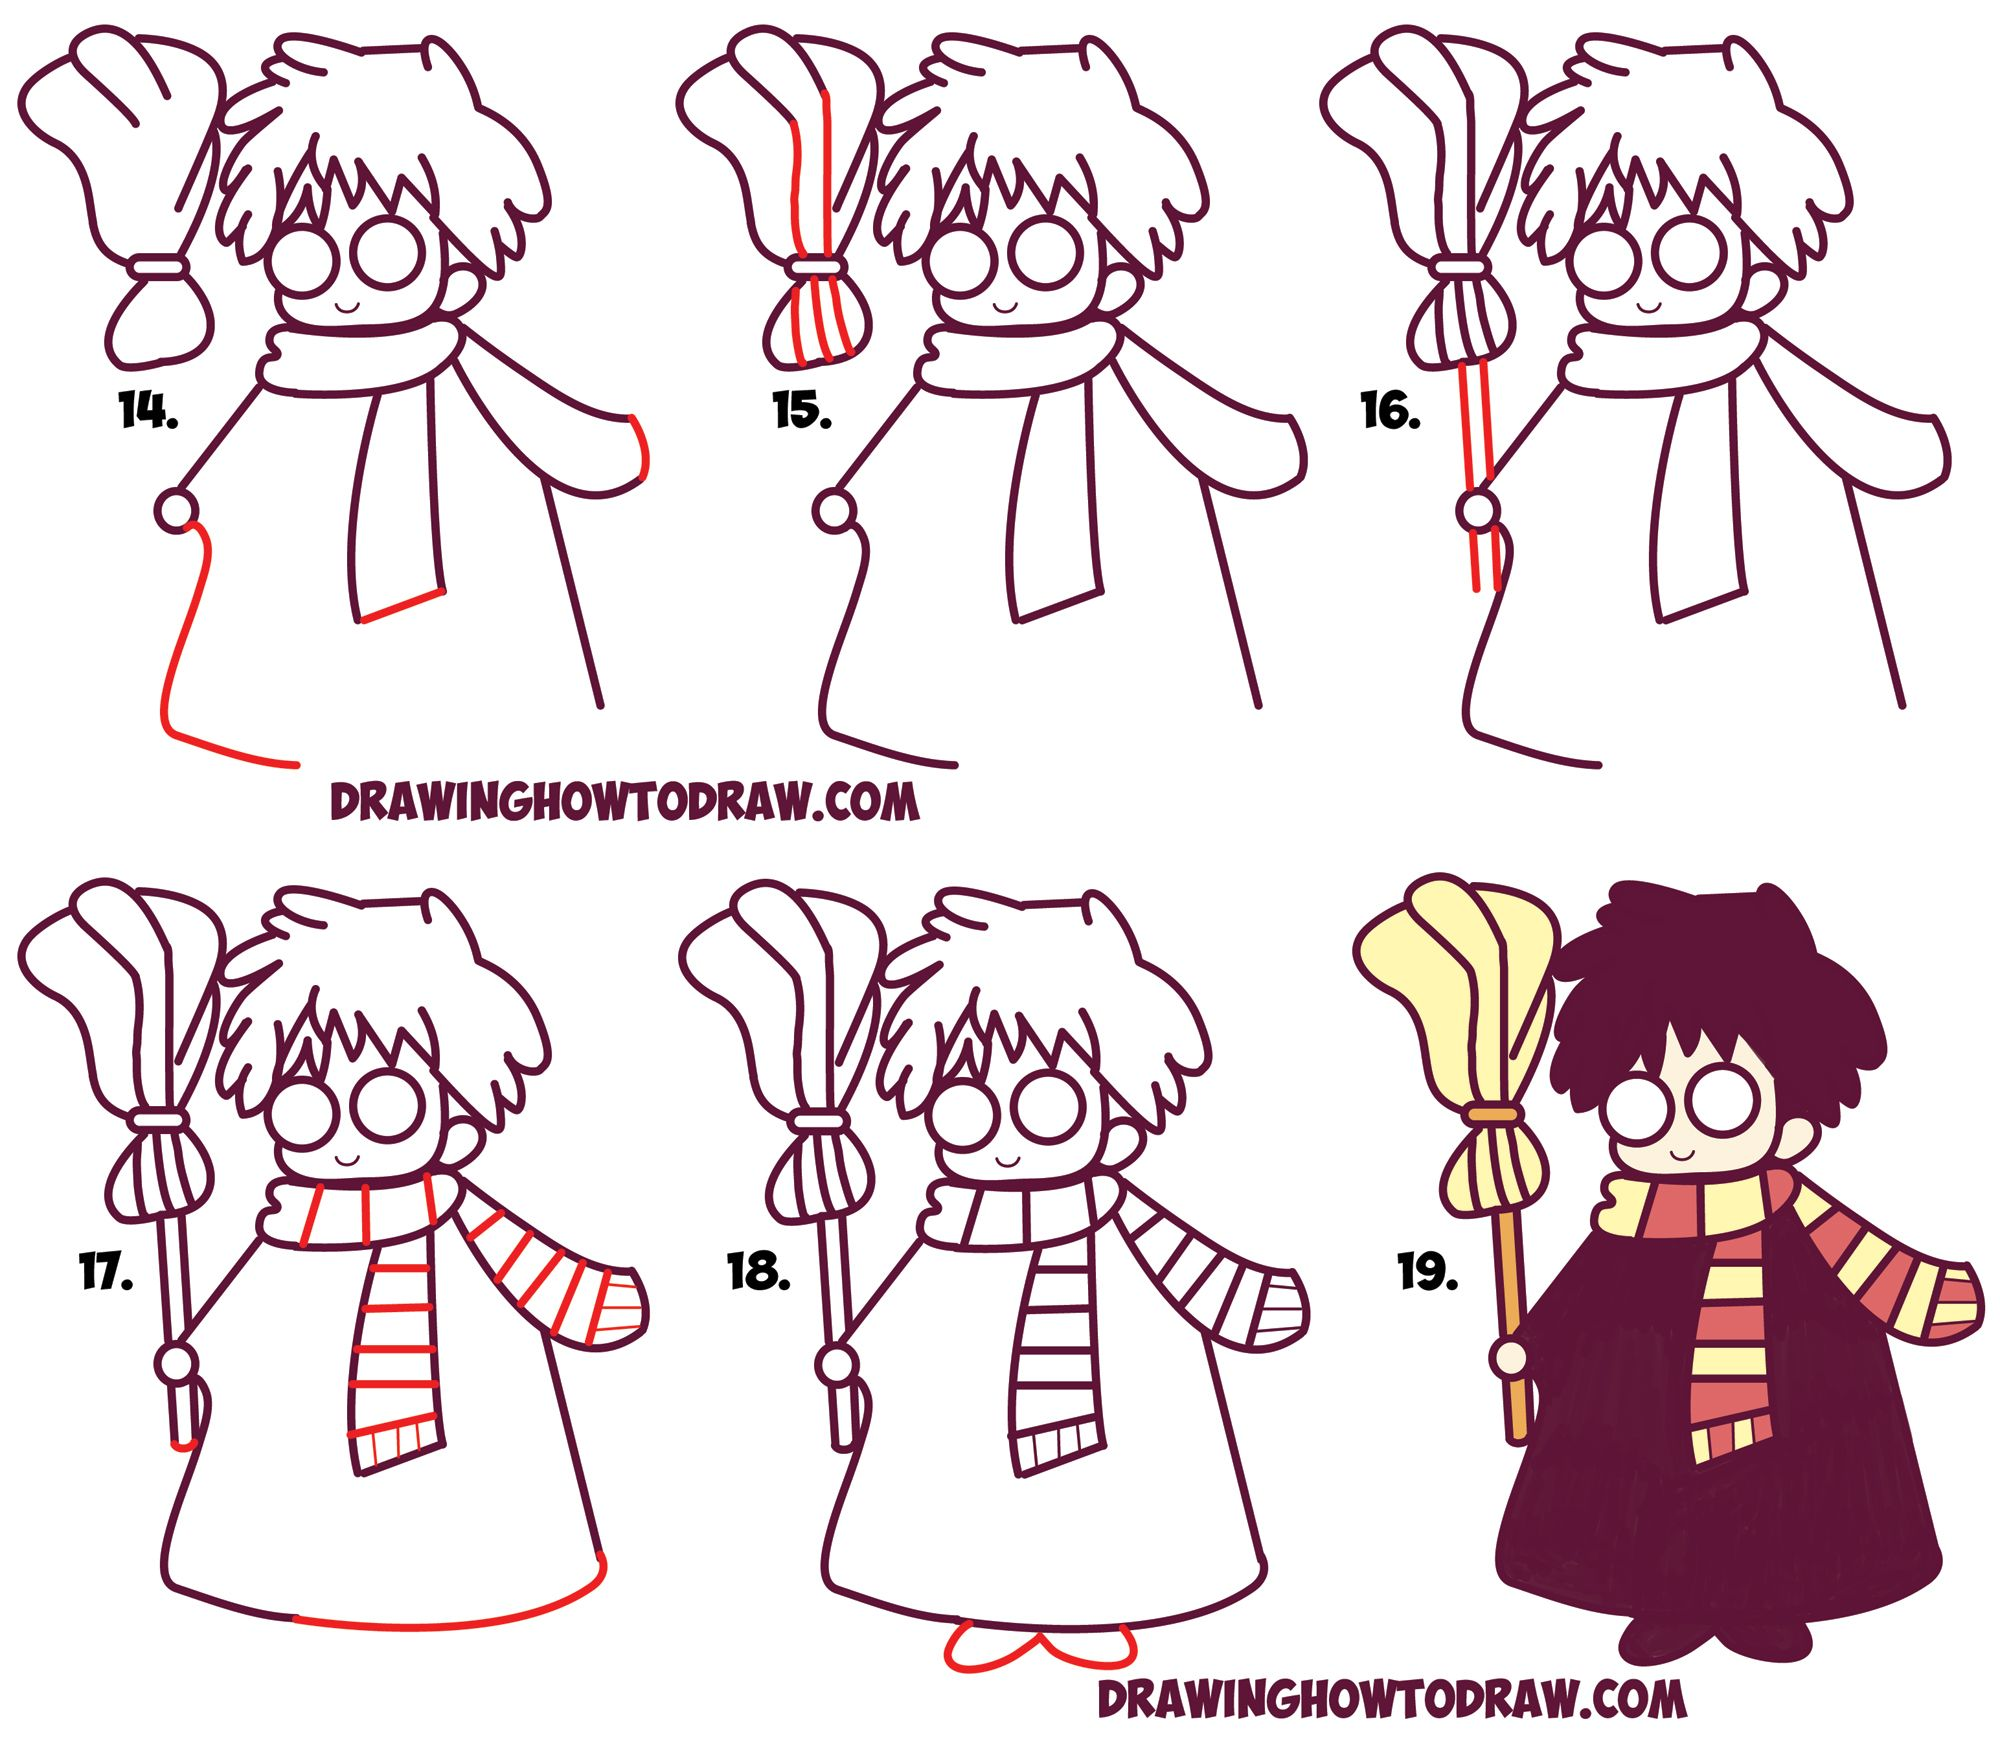 How To Draw Cute Harry Potter Chibi Kawaii Easy Step By Step Drawing Tutorial For Kids